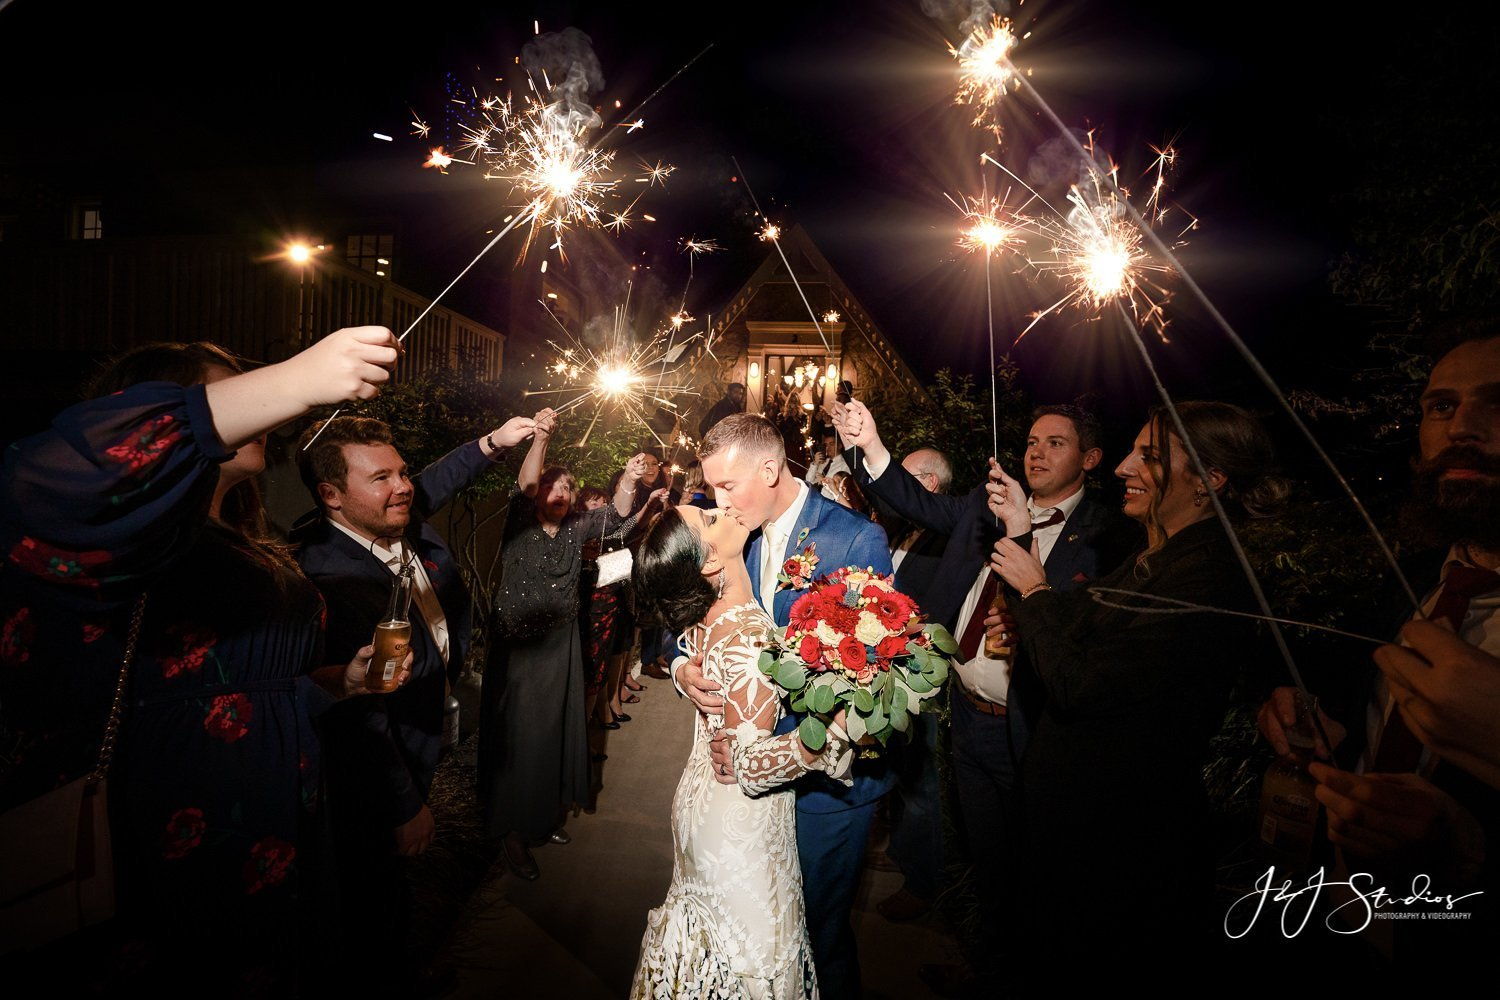 fairmount rowing association wedding sparkler exit by J&j studios